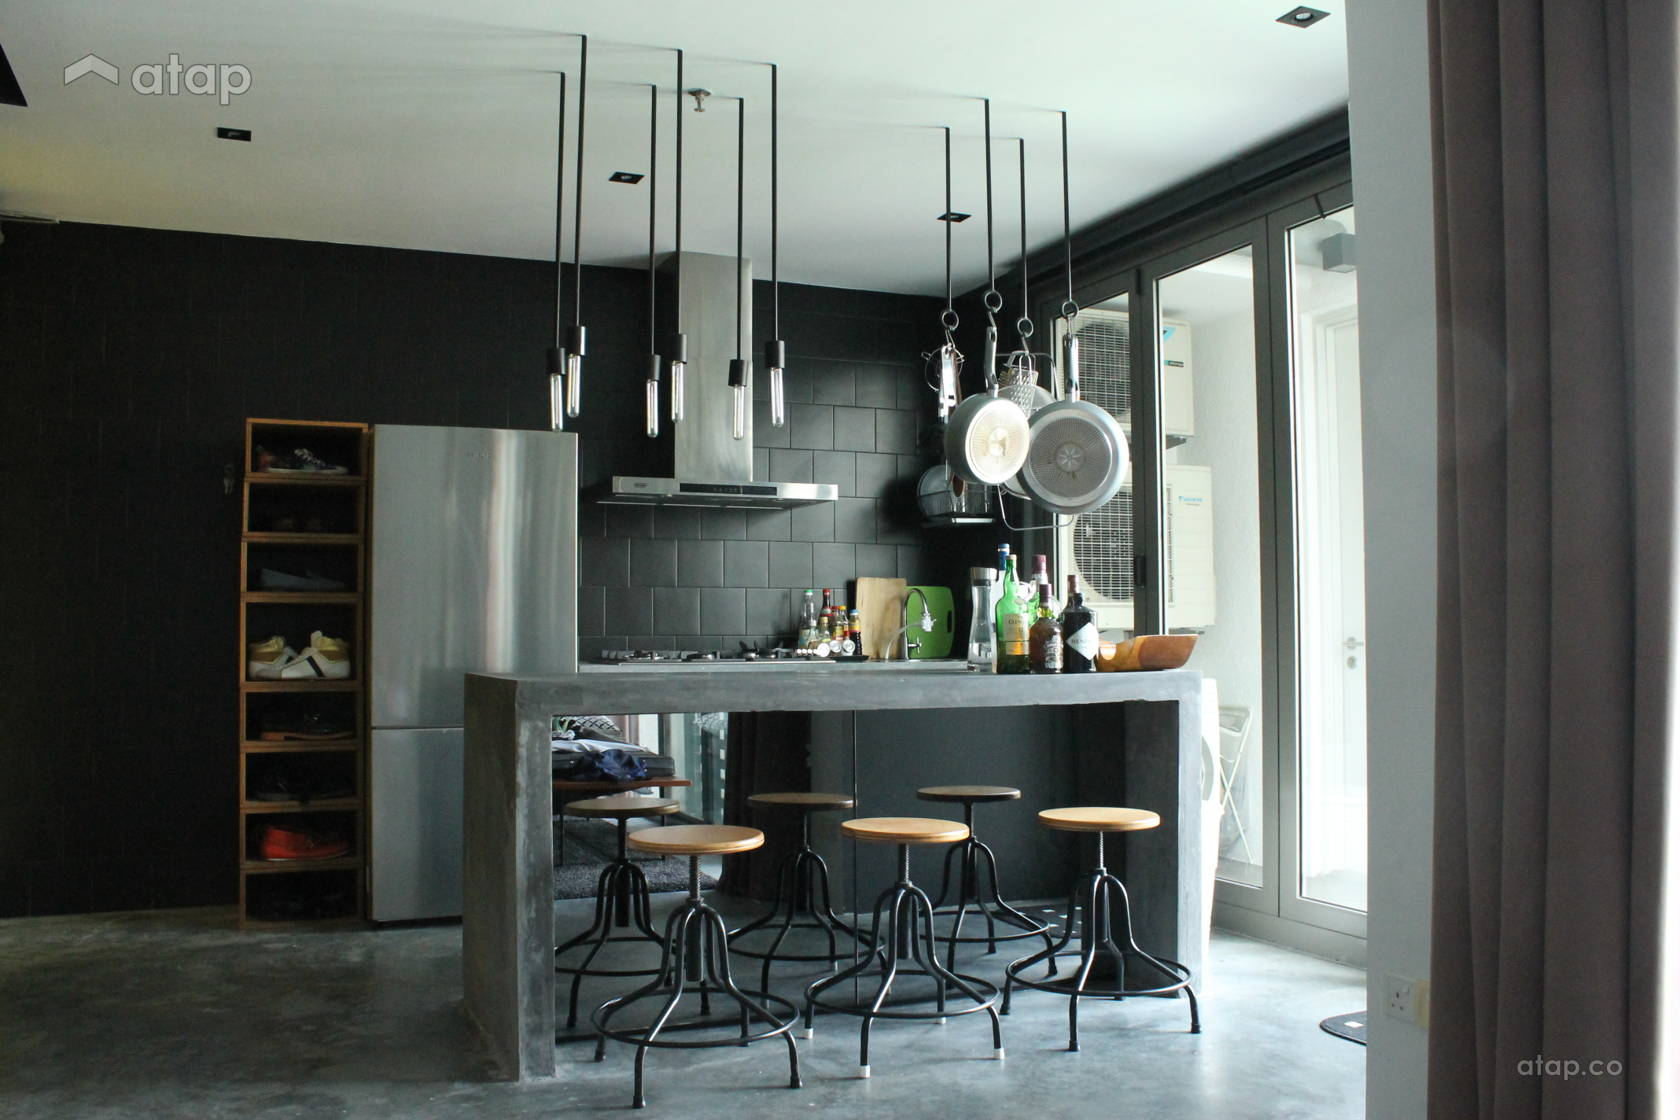 These Open Layout Kitchen Designs In Malaysia Are Great For Small